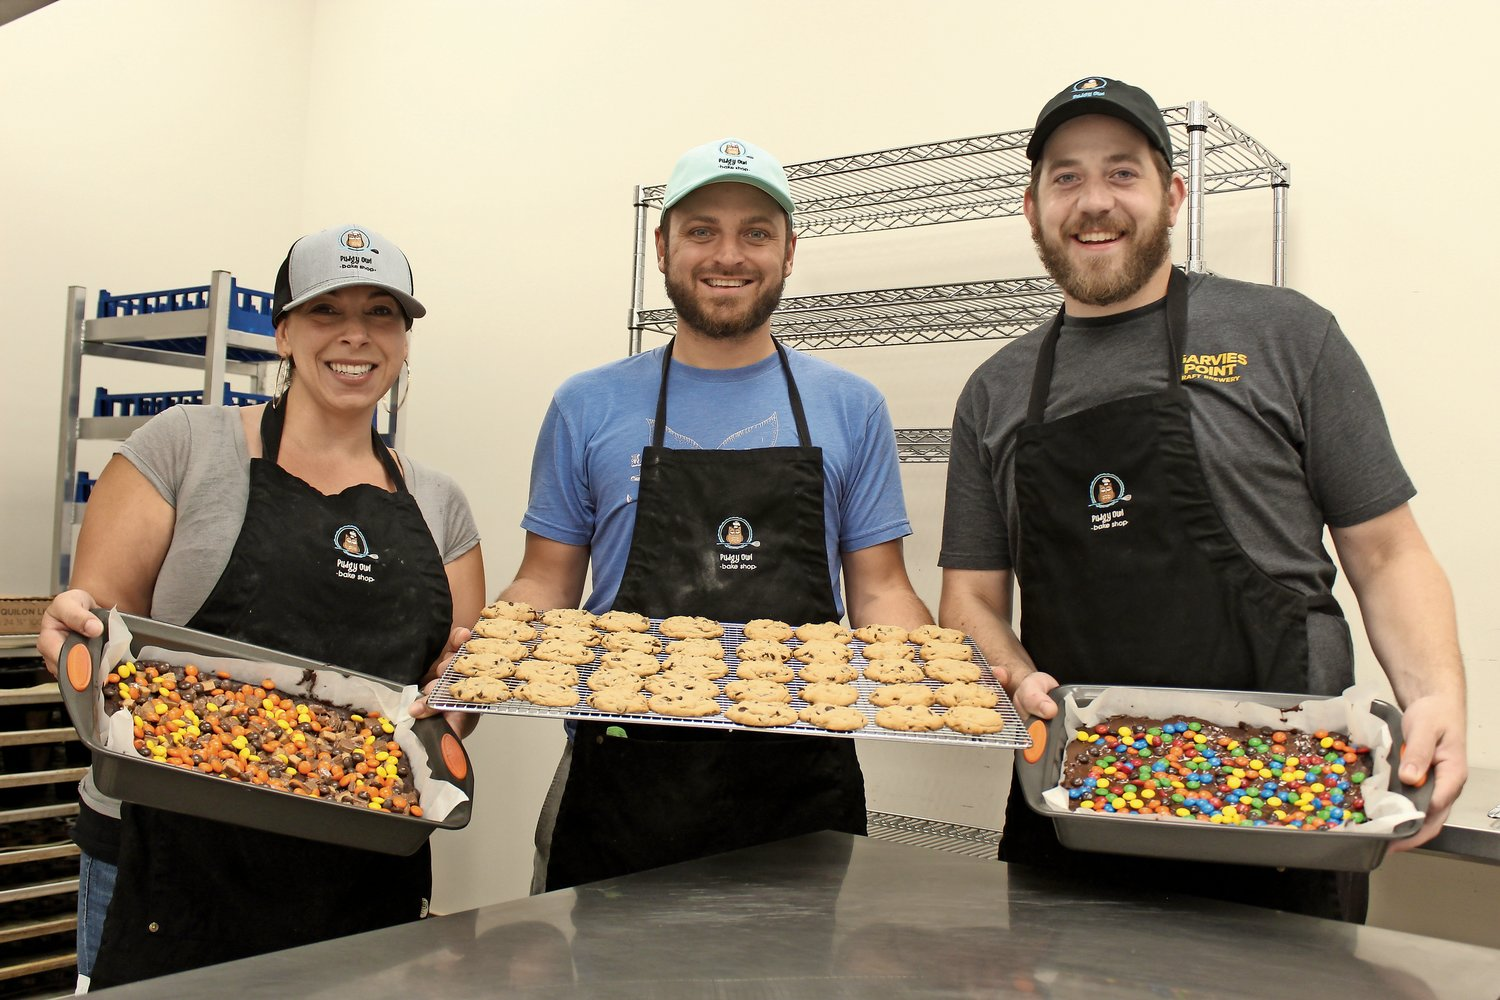 Pudgy Owl bakers Carina De Castri, left, Ricky Podsialdo and Travis Stern shared some of the freshly baked goods they prepared for customers.